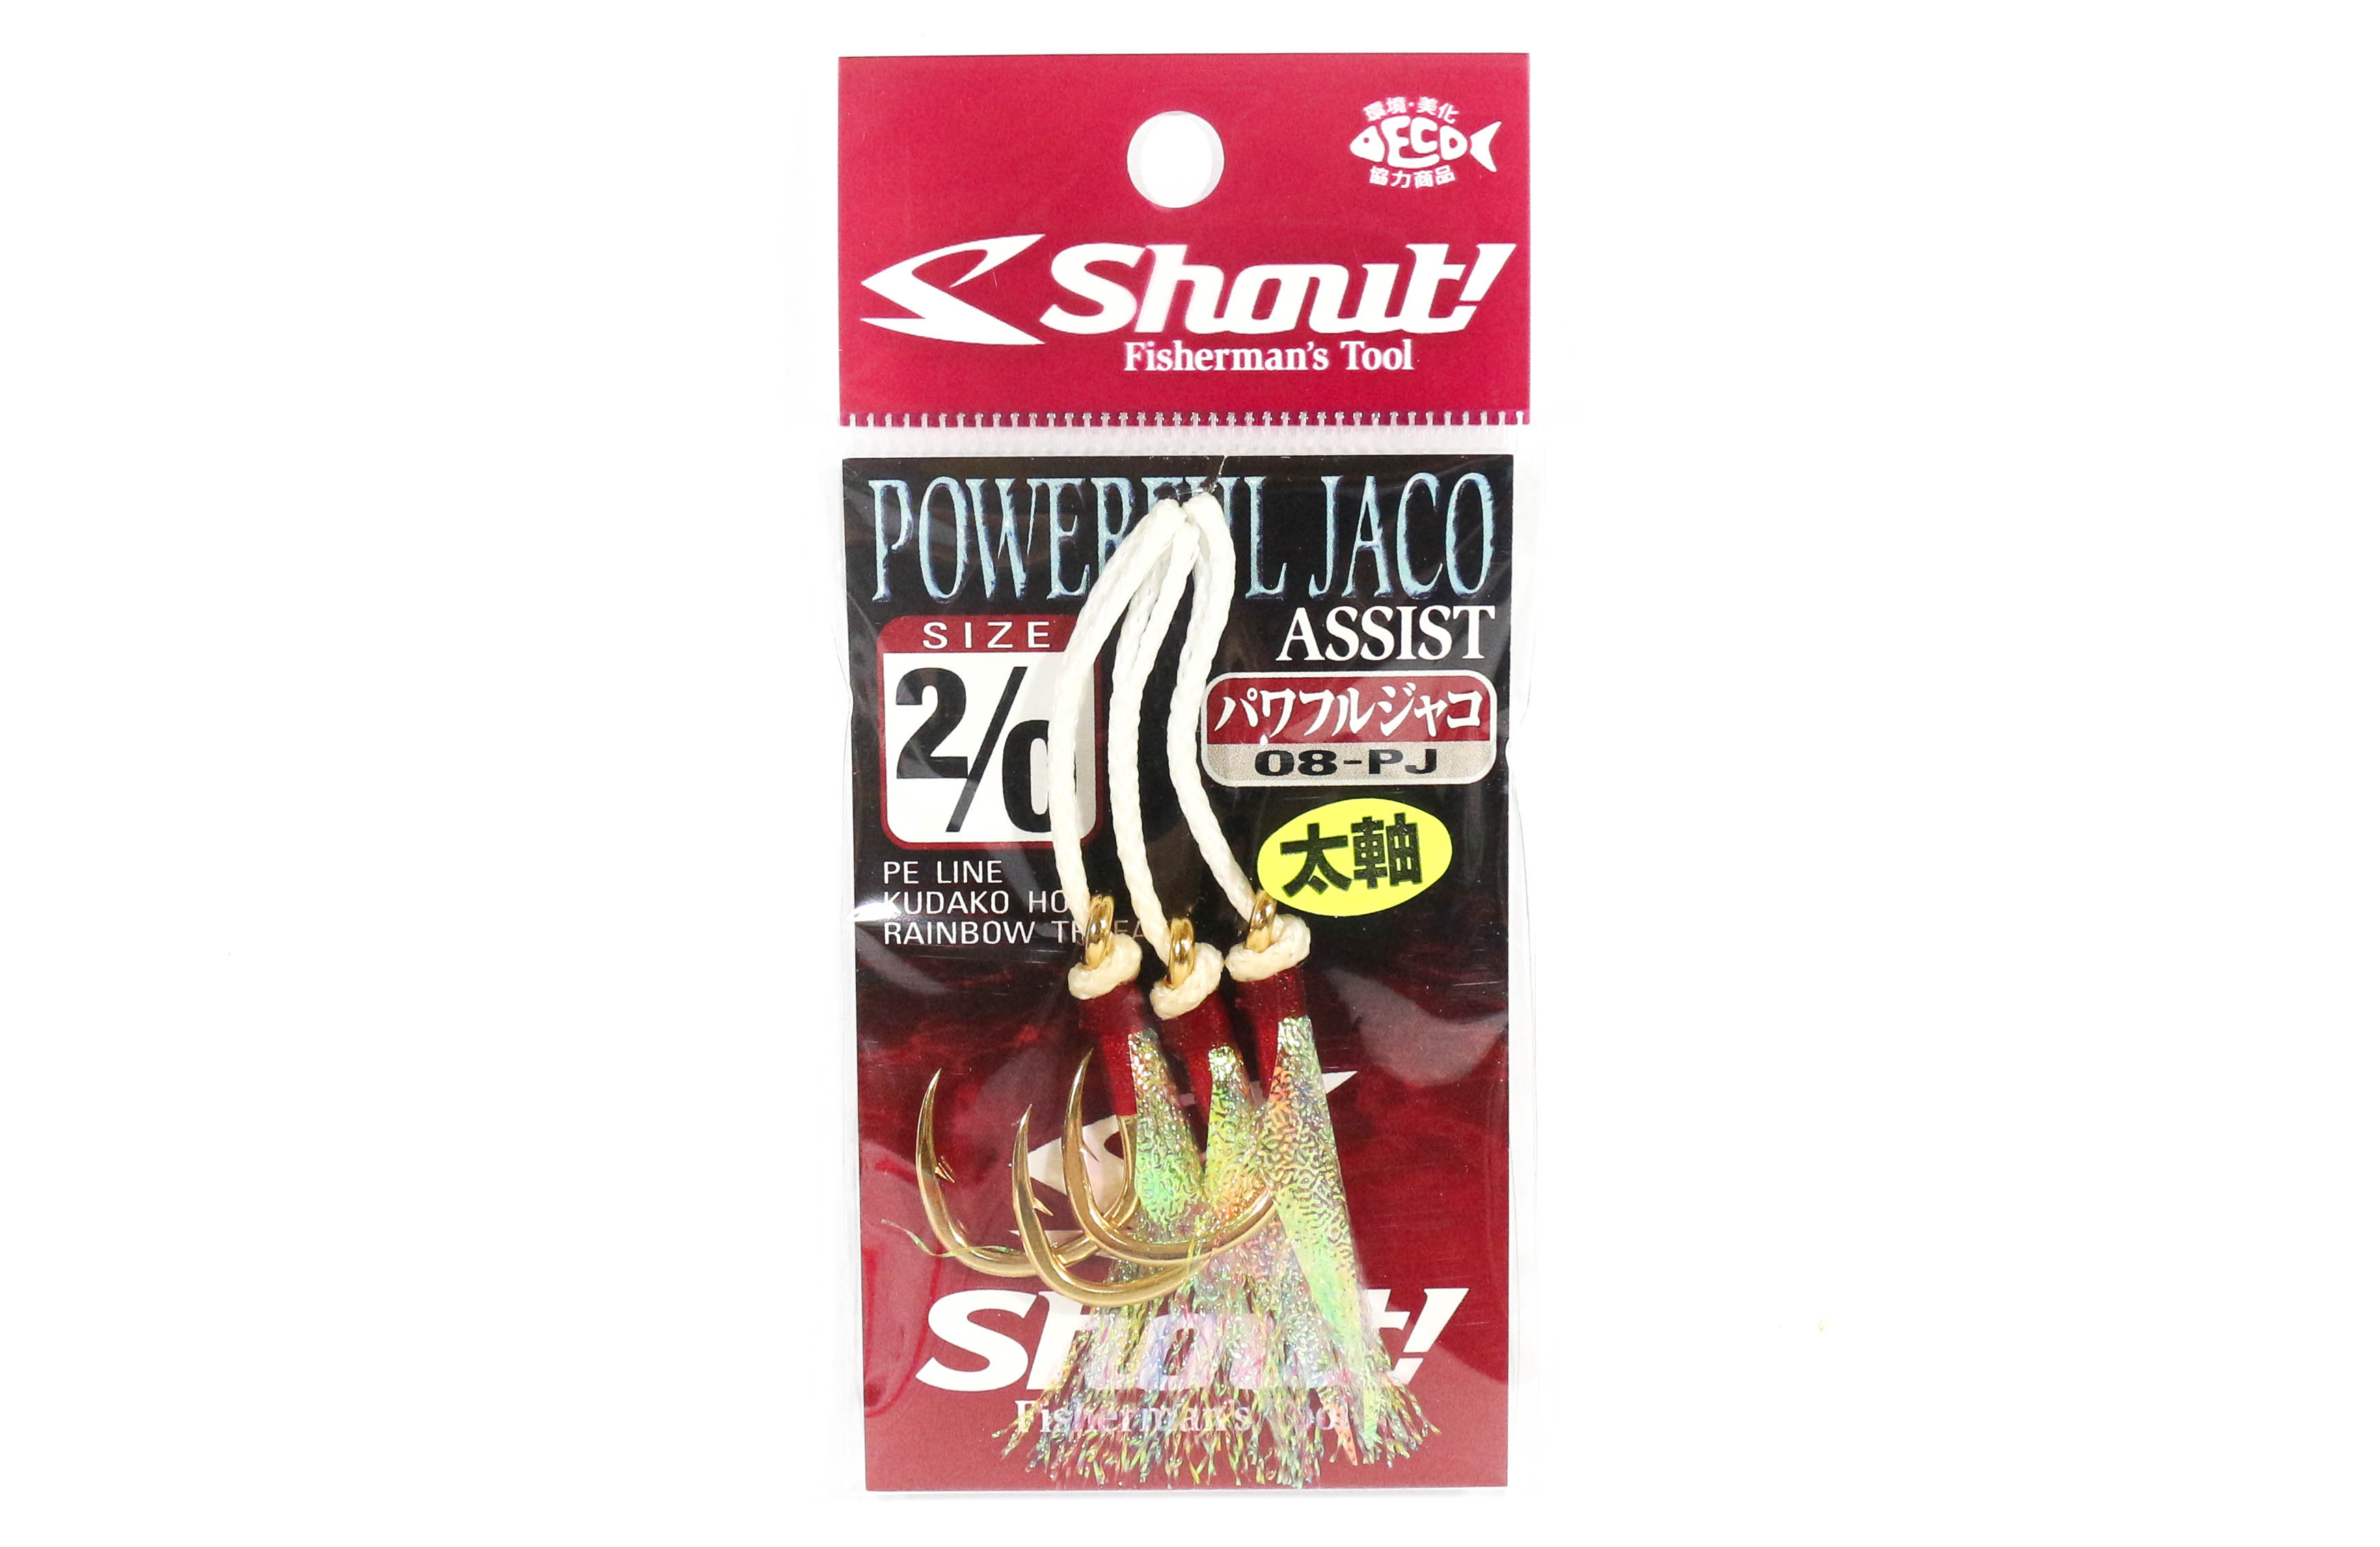 Shout 08-PJ Powerful Jaco Hook Rigged Assist Rainbow Thread Size 2/0 (6201)